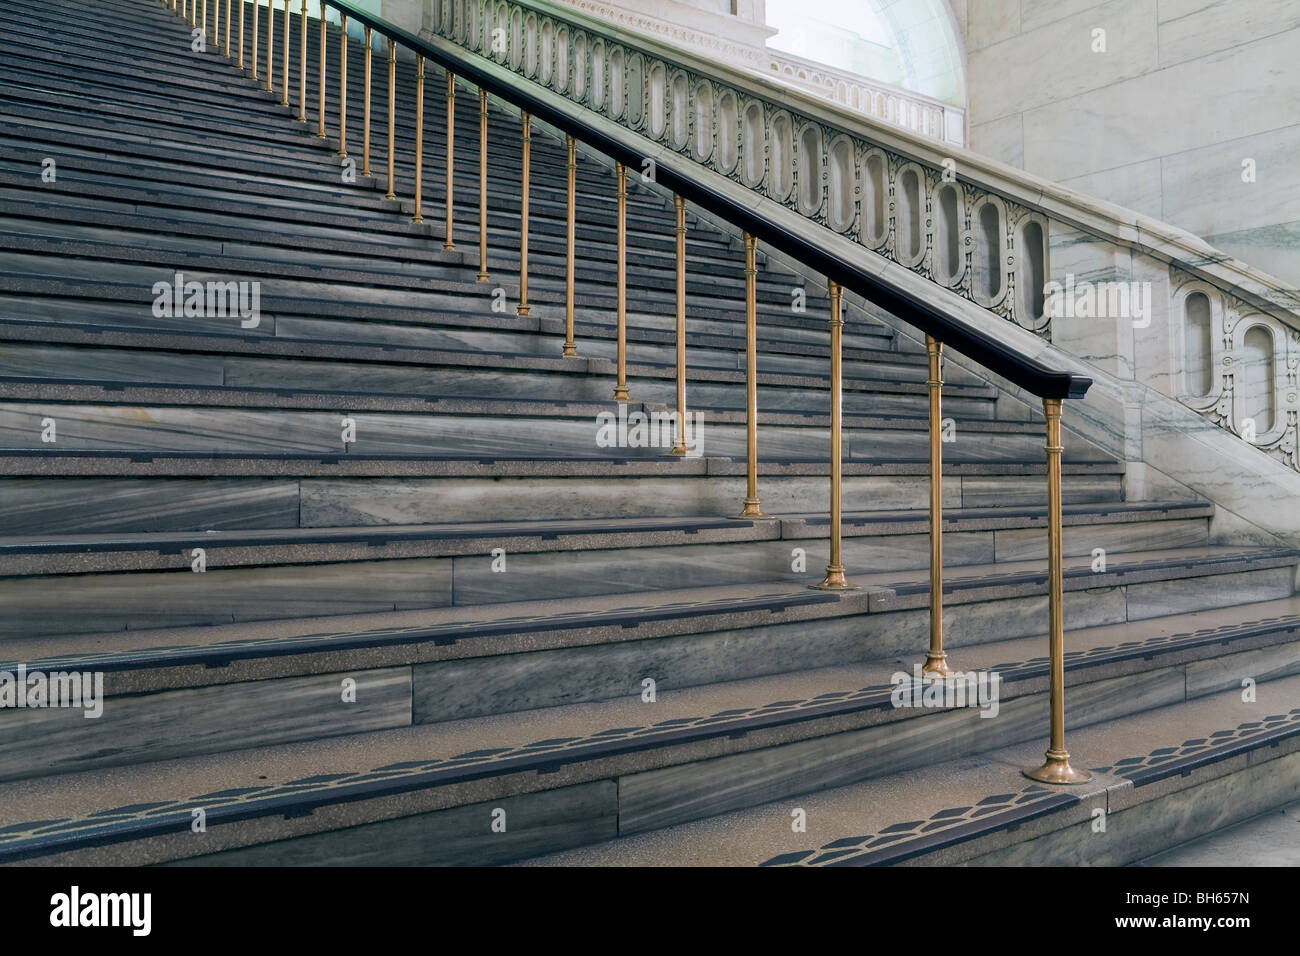 USA, New York City, Manhattan, New York Public Library   Staircase   Stock